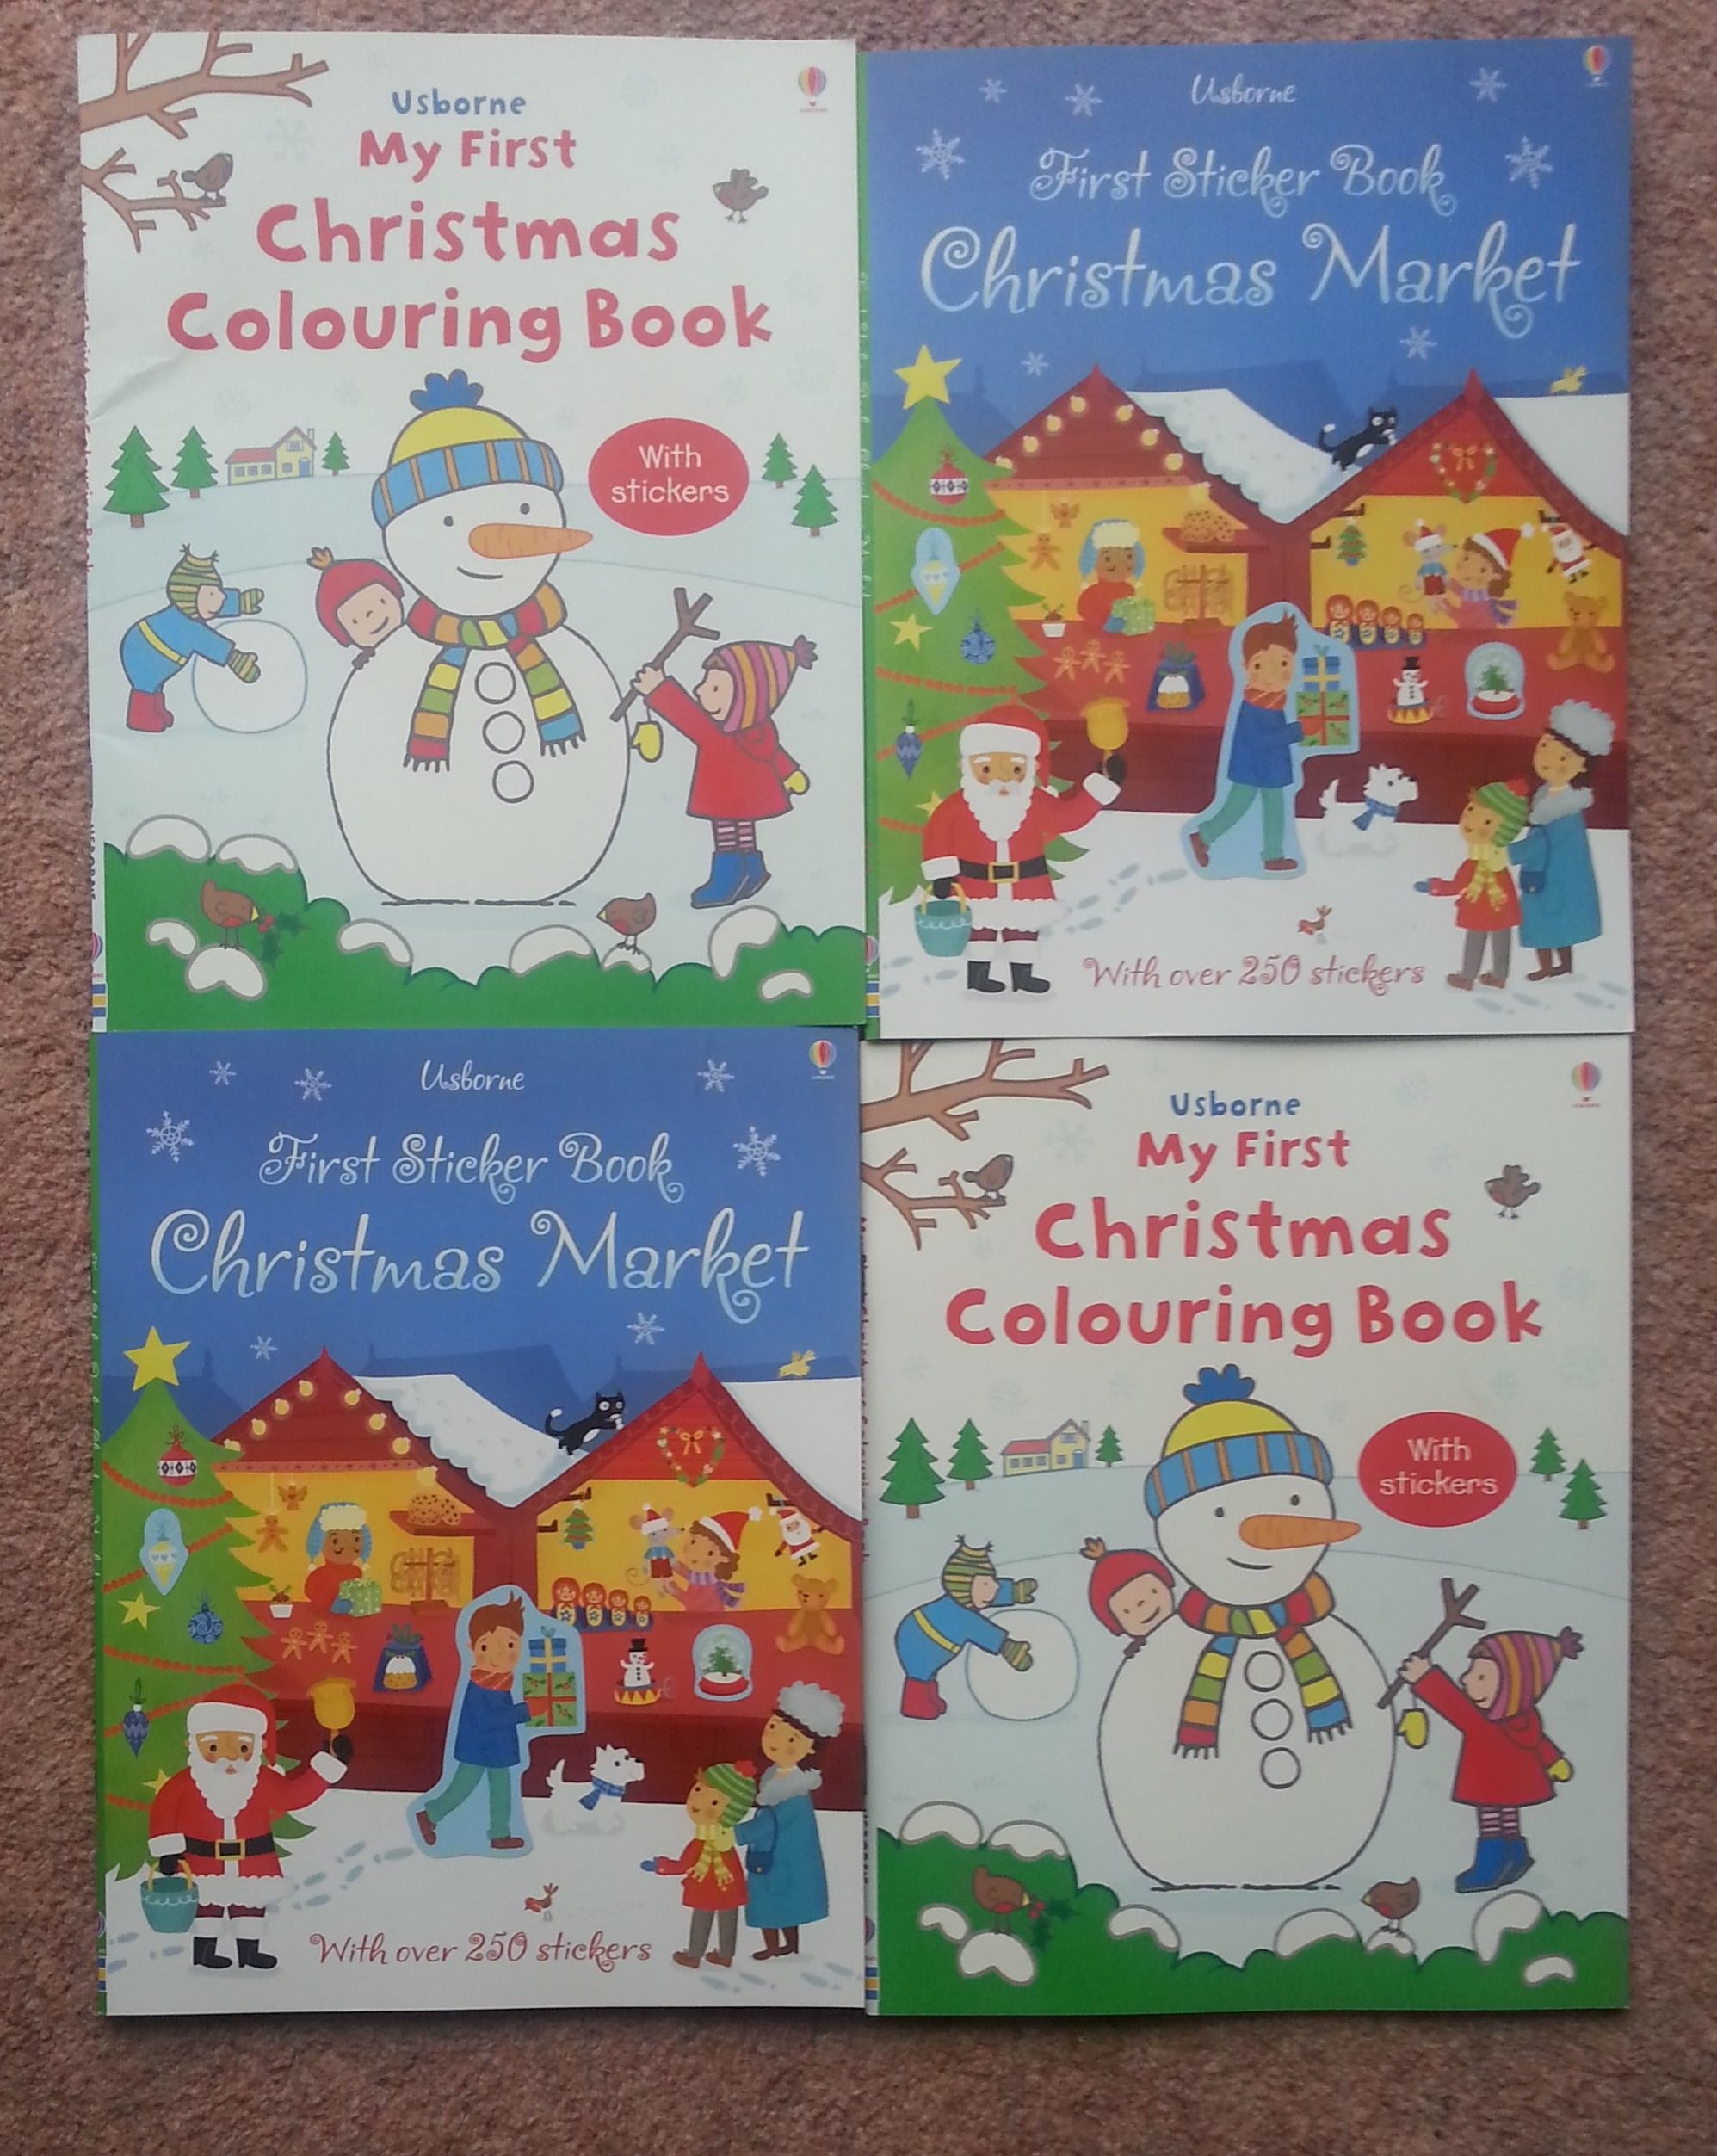 A colouring book with simple festive scenes and stickers ...